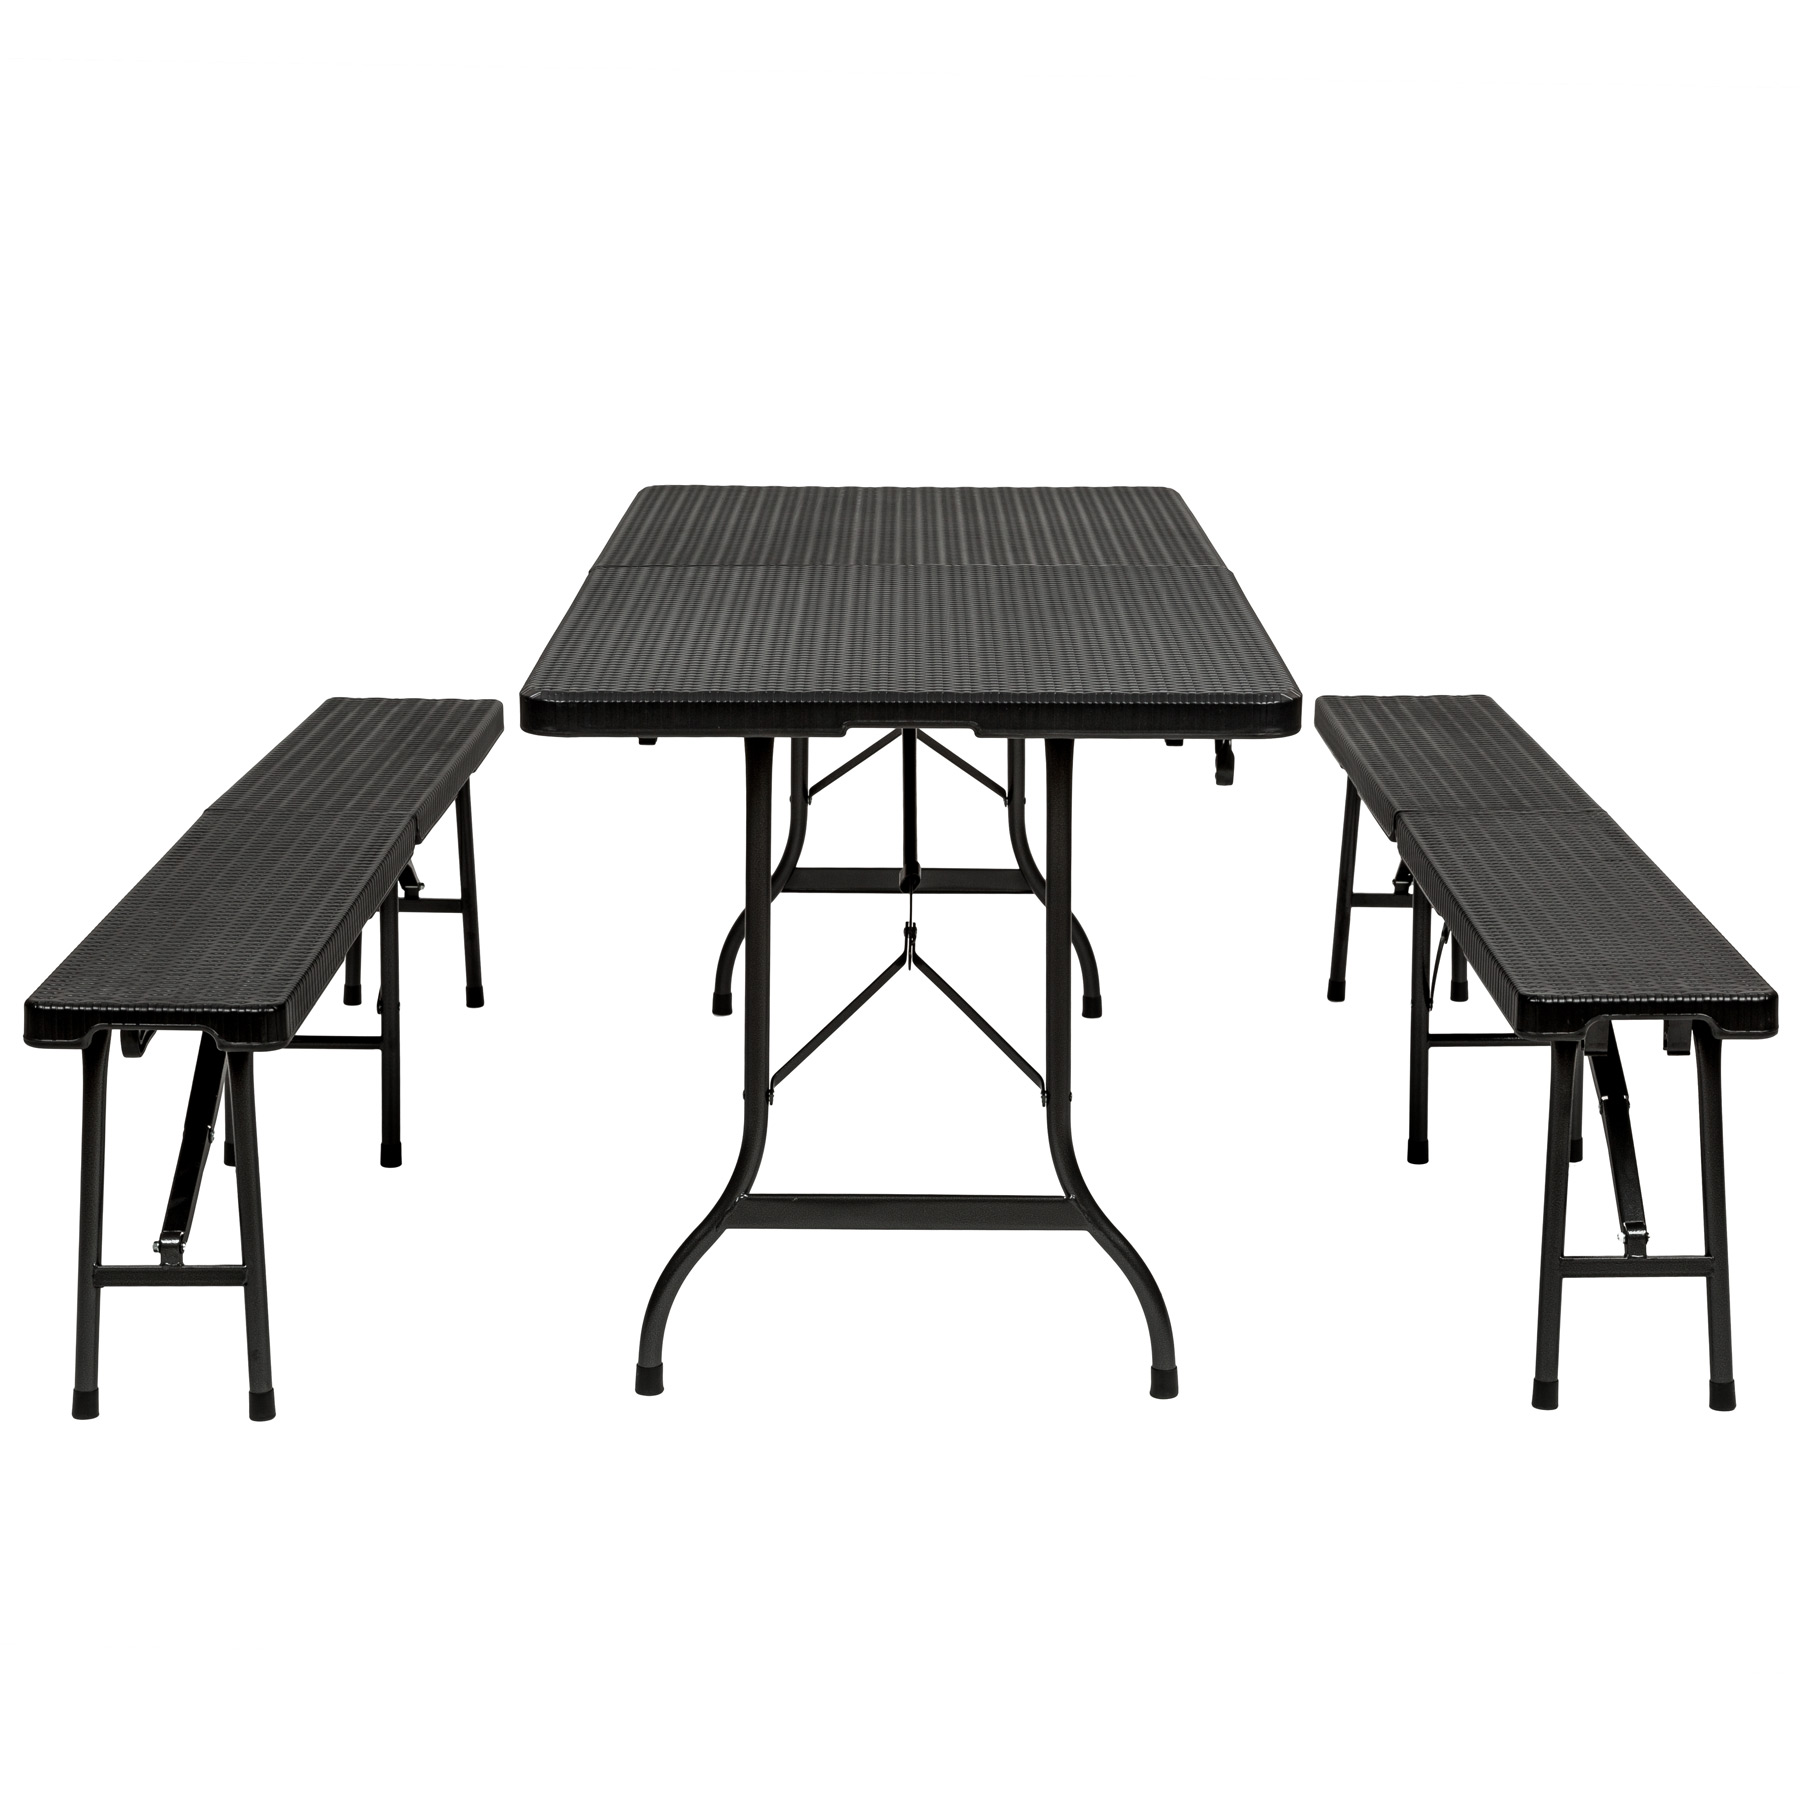 Folding Portable Table Benches Camping Set Garden Dining